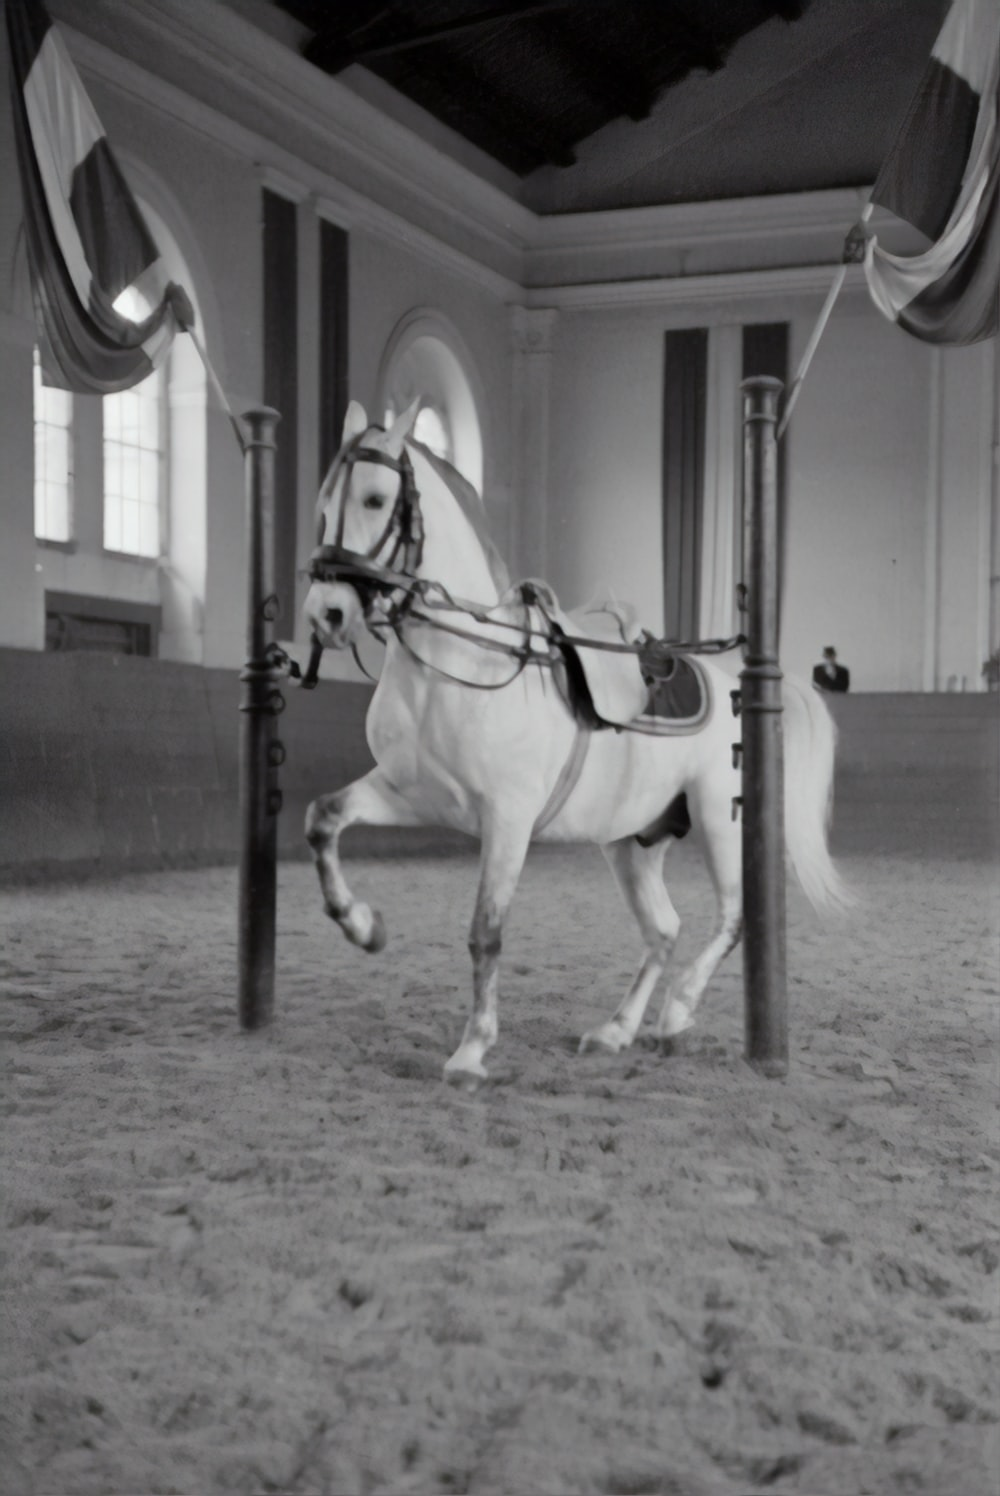 grayscale photo of horse in a building